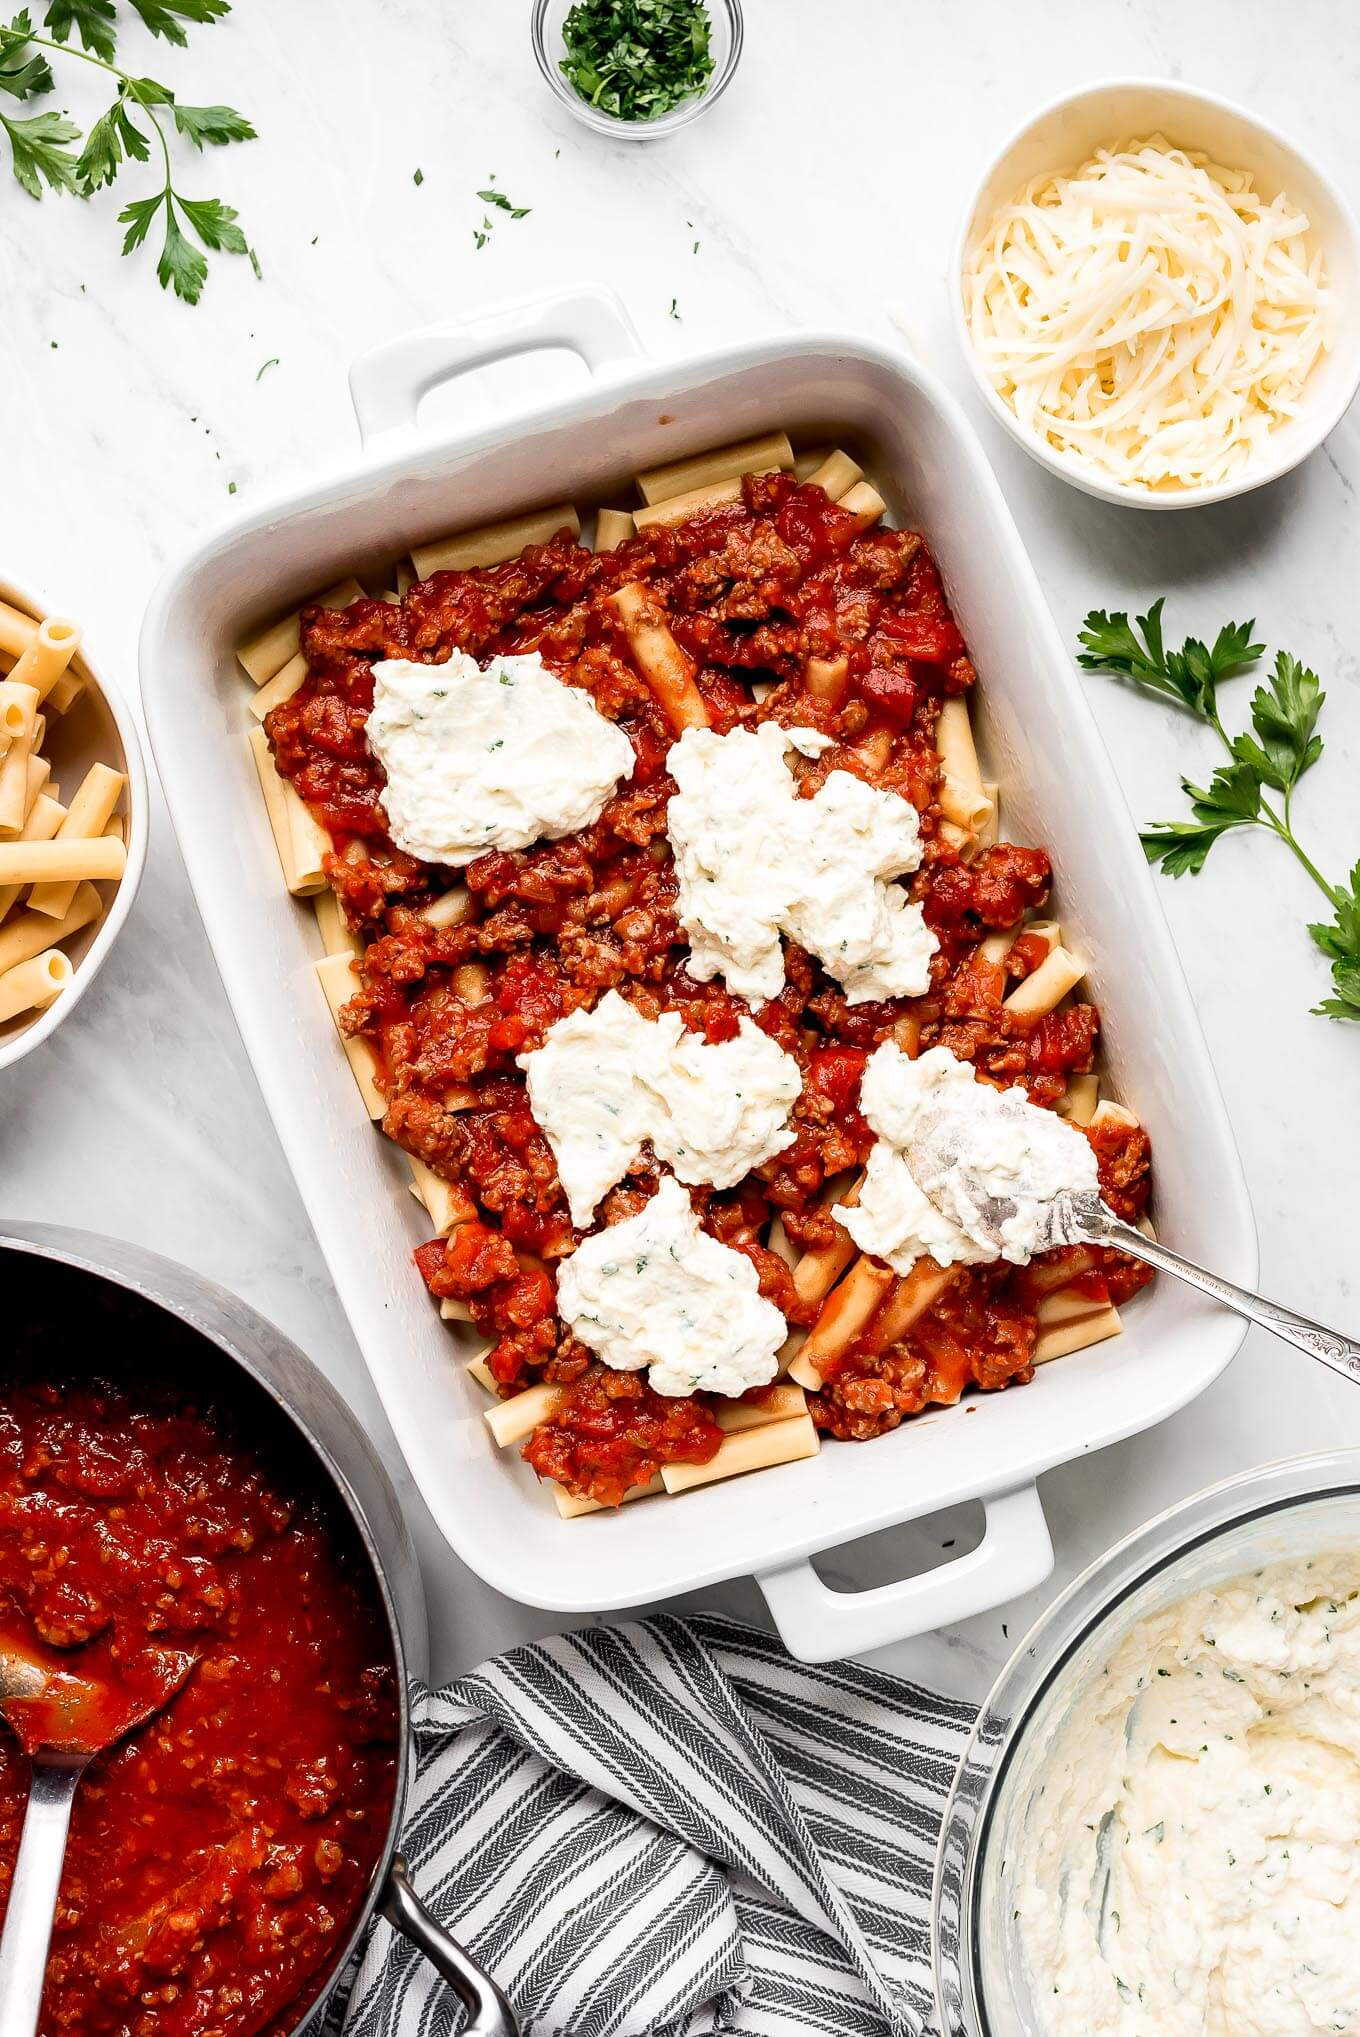 Assembling baked ziti in a casserole dish with a layer of ziti pasta, sausage tomato sauce, and dots of ricotta cheese mixture.